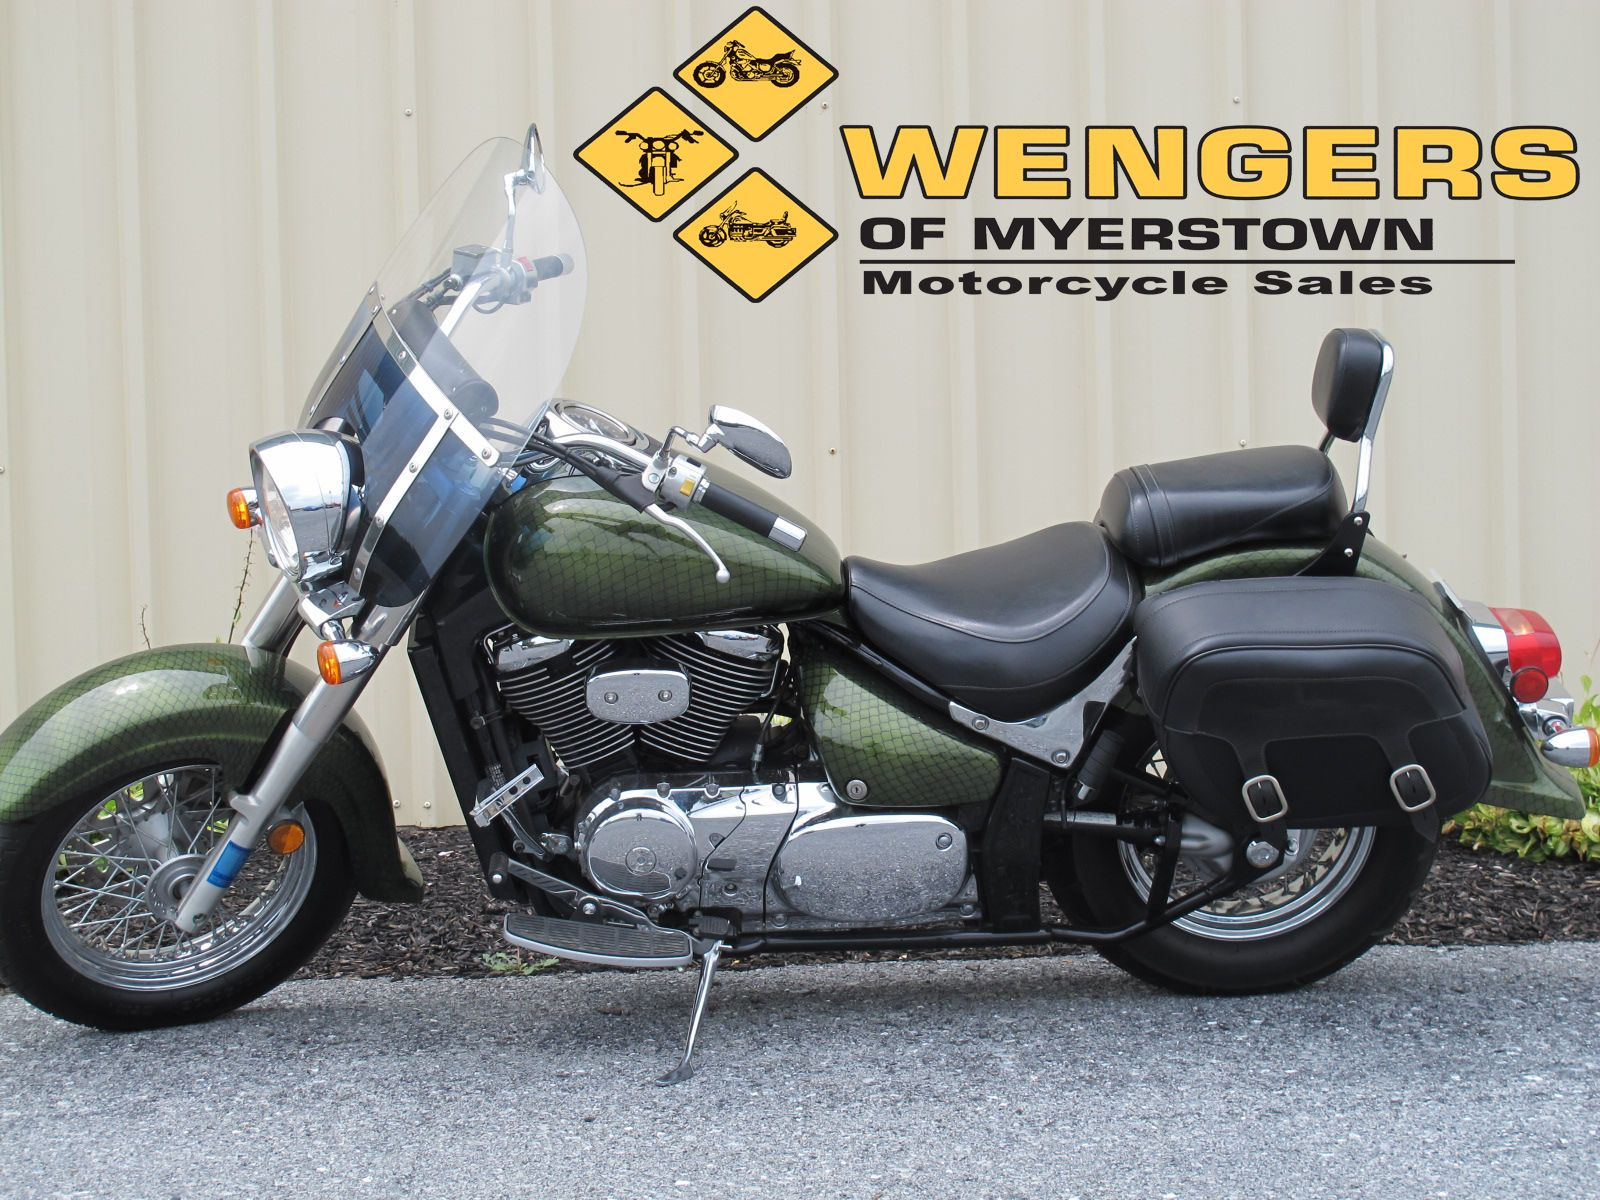 Wengers Of Myerstown >> Suzuki Boulevard C50 Motorcycles For Sale At Wengers Of